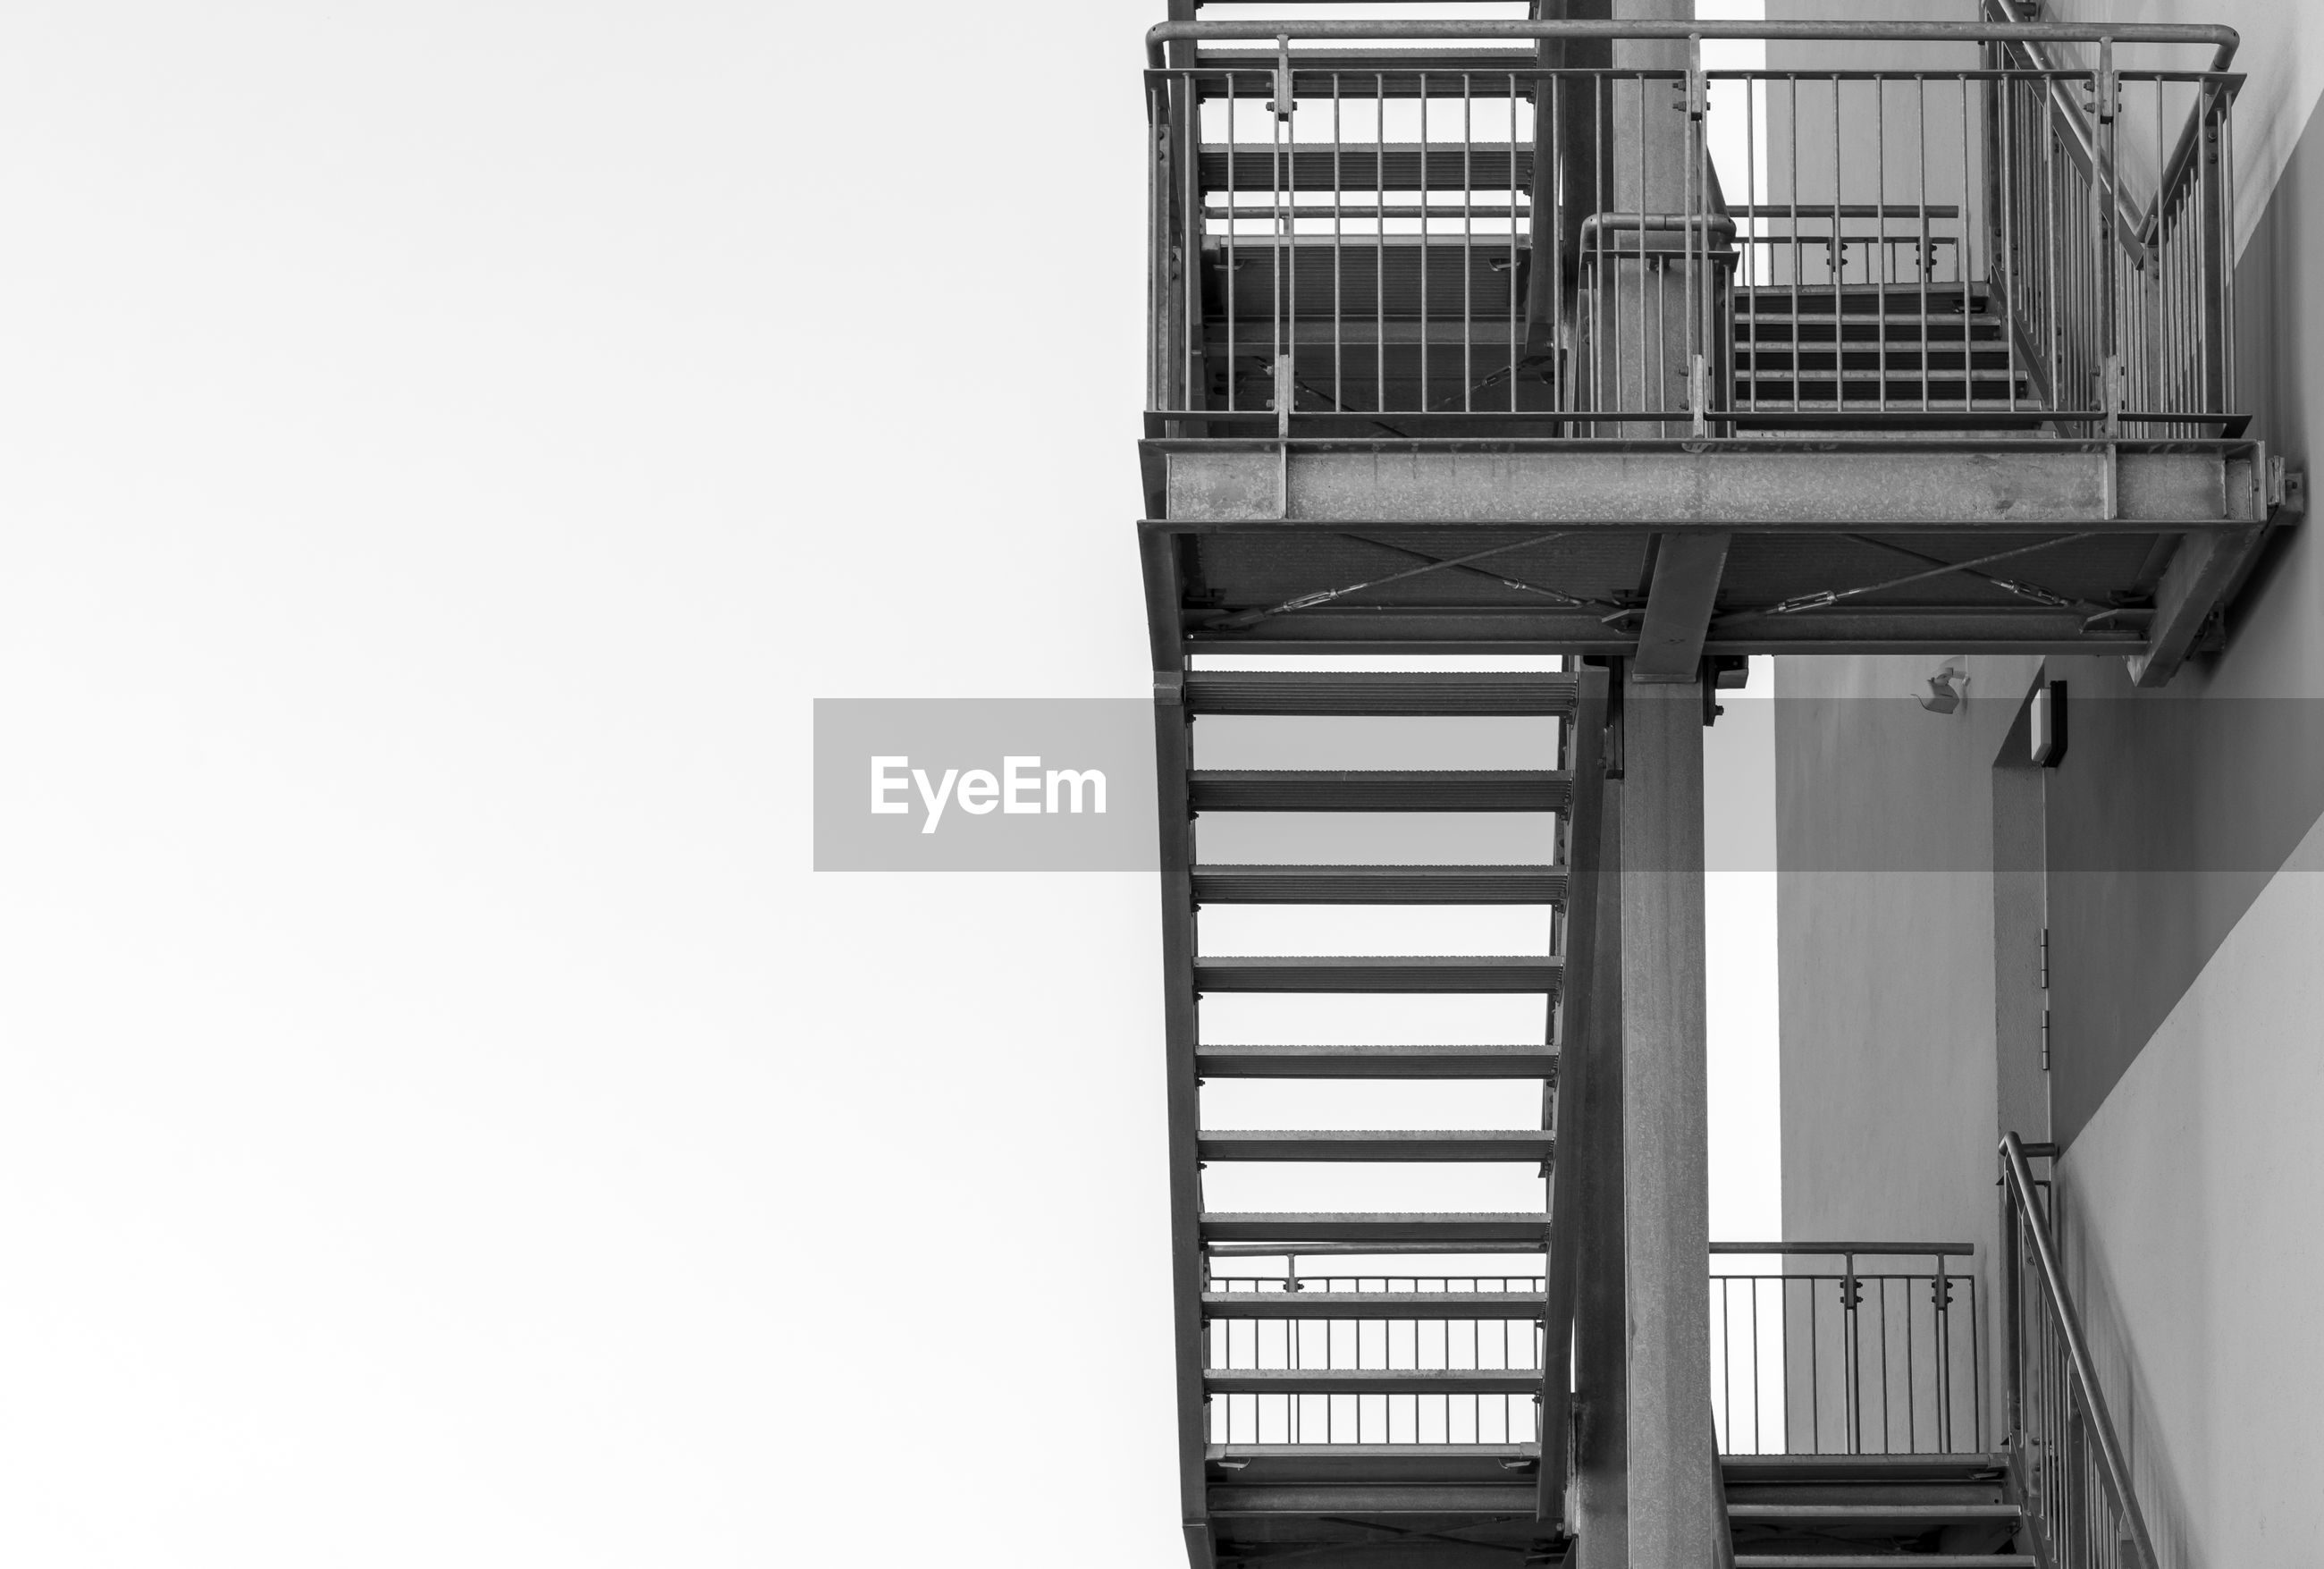 Low angle view of fire escape on building against clear sky